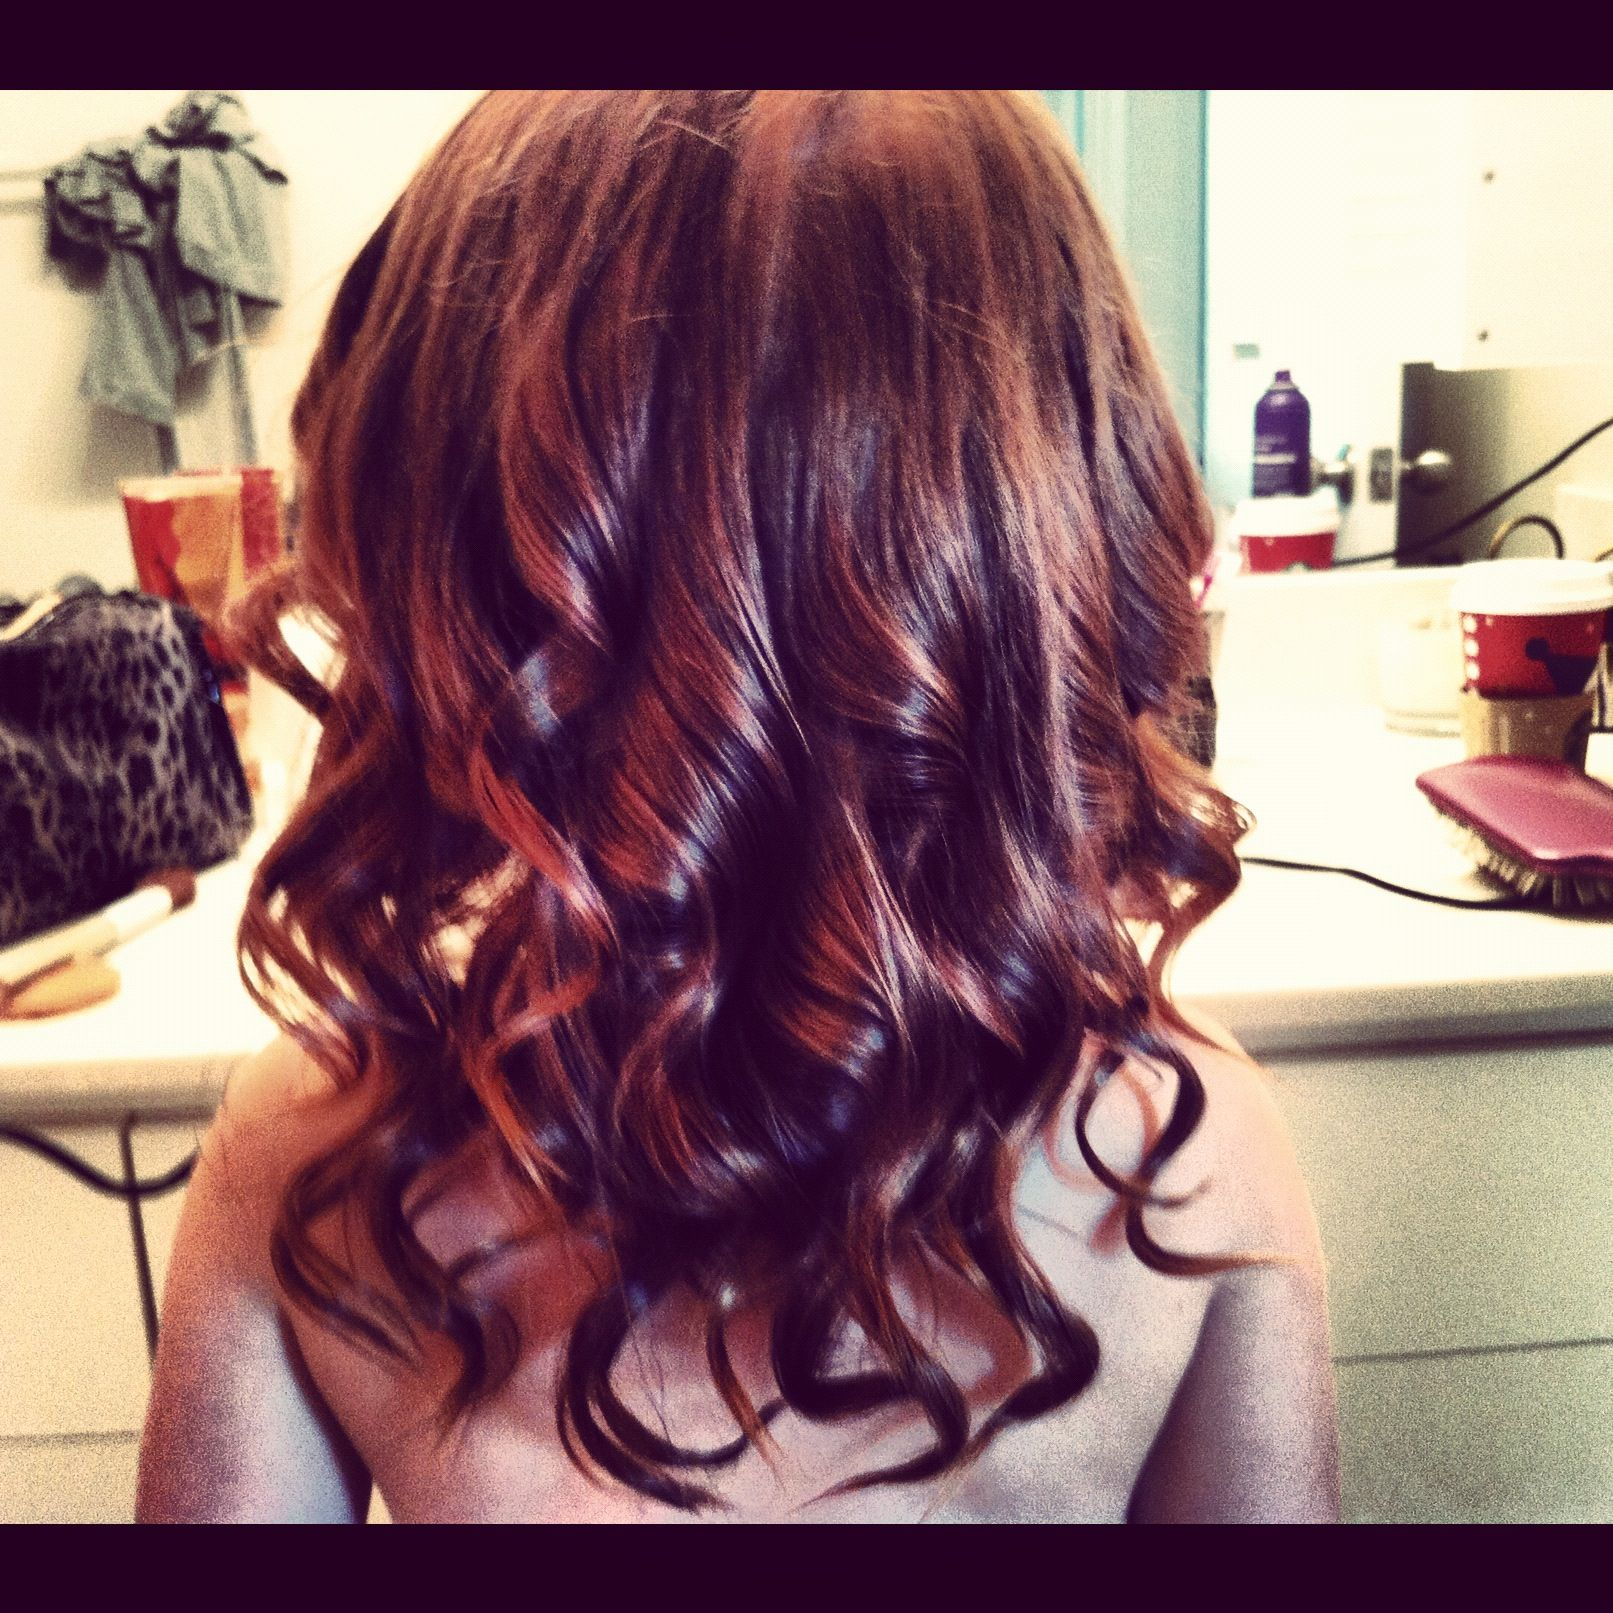 Cute spiral curls done with a wand